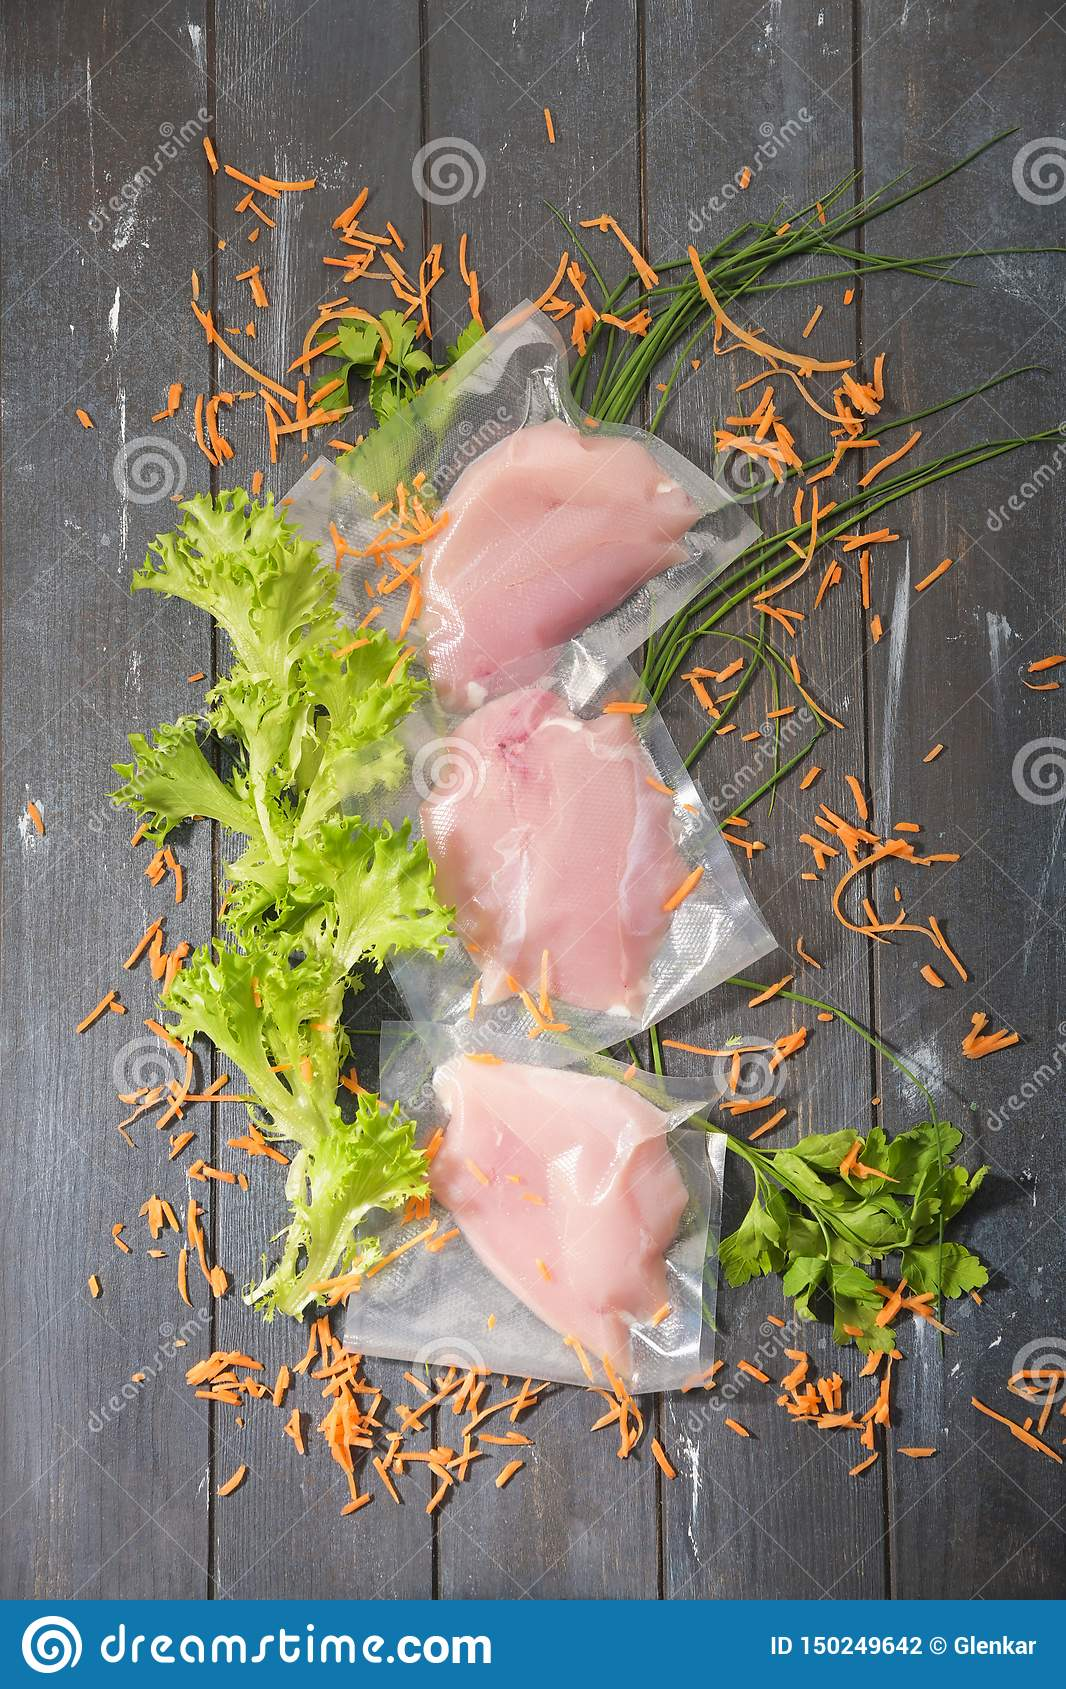 Sous Vide cooking concept. Vacuum packed ingredients arranged on wooden dyed background.